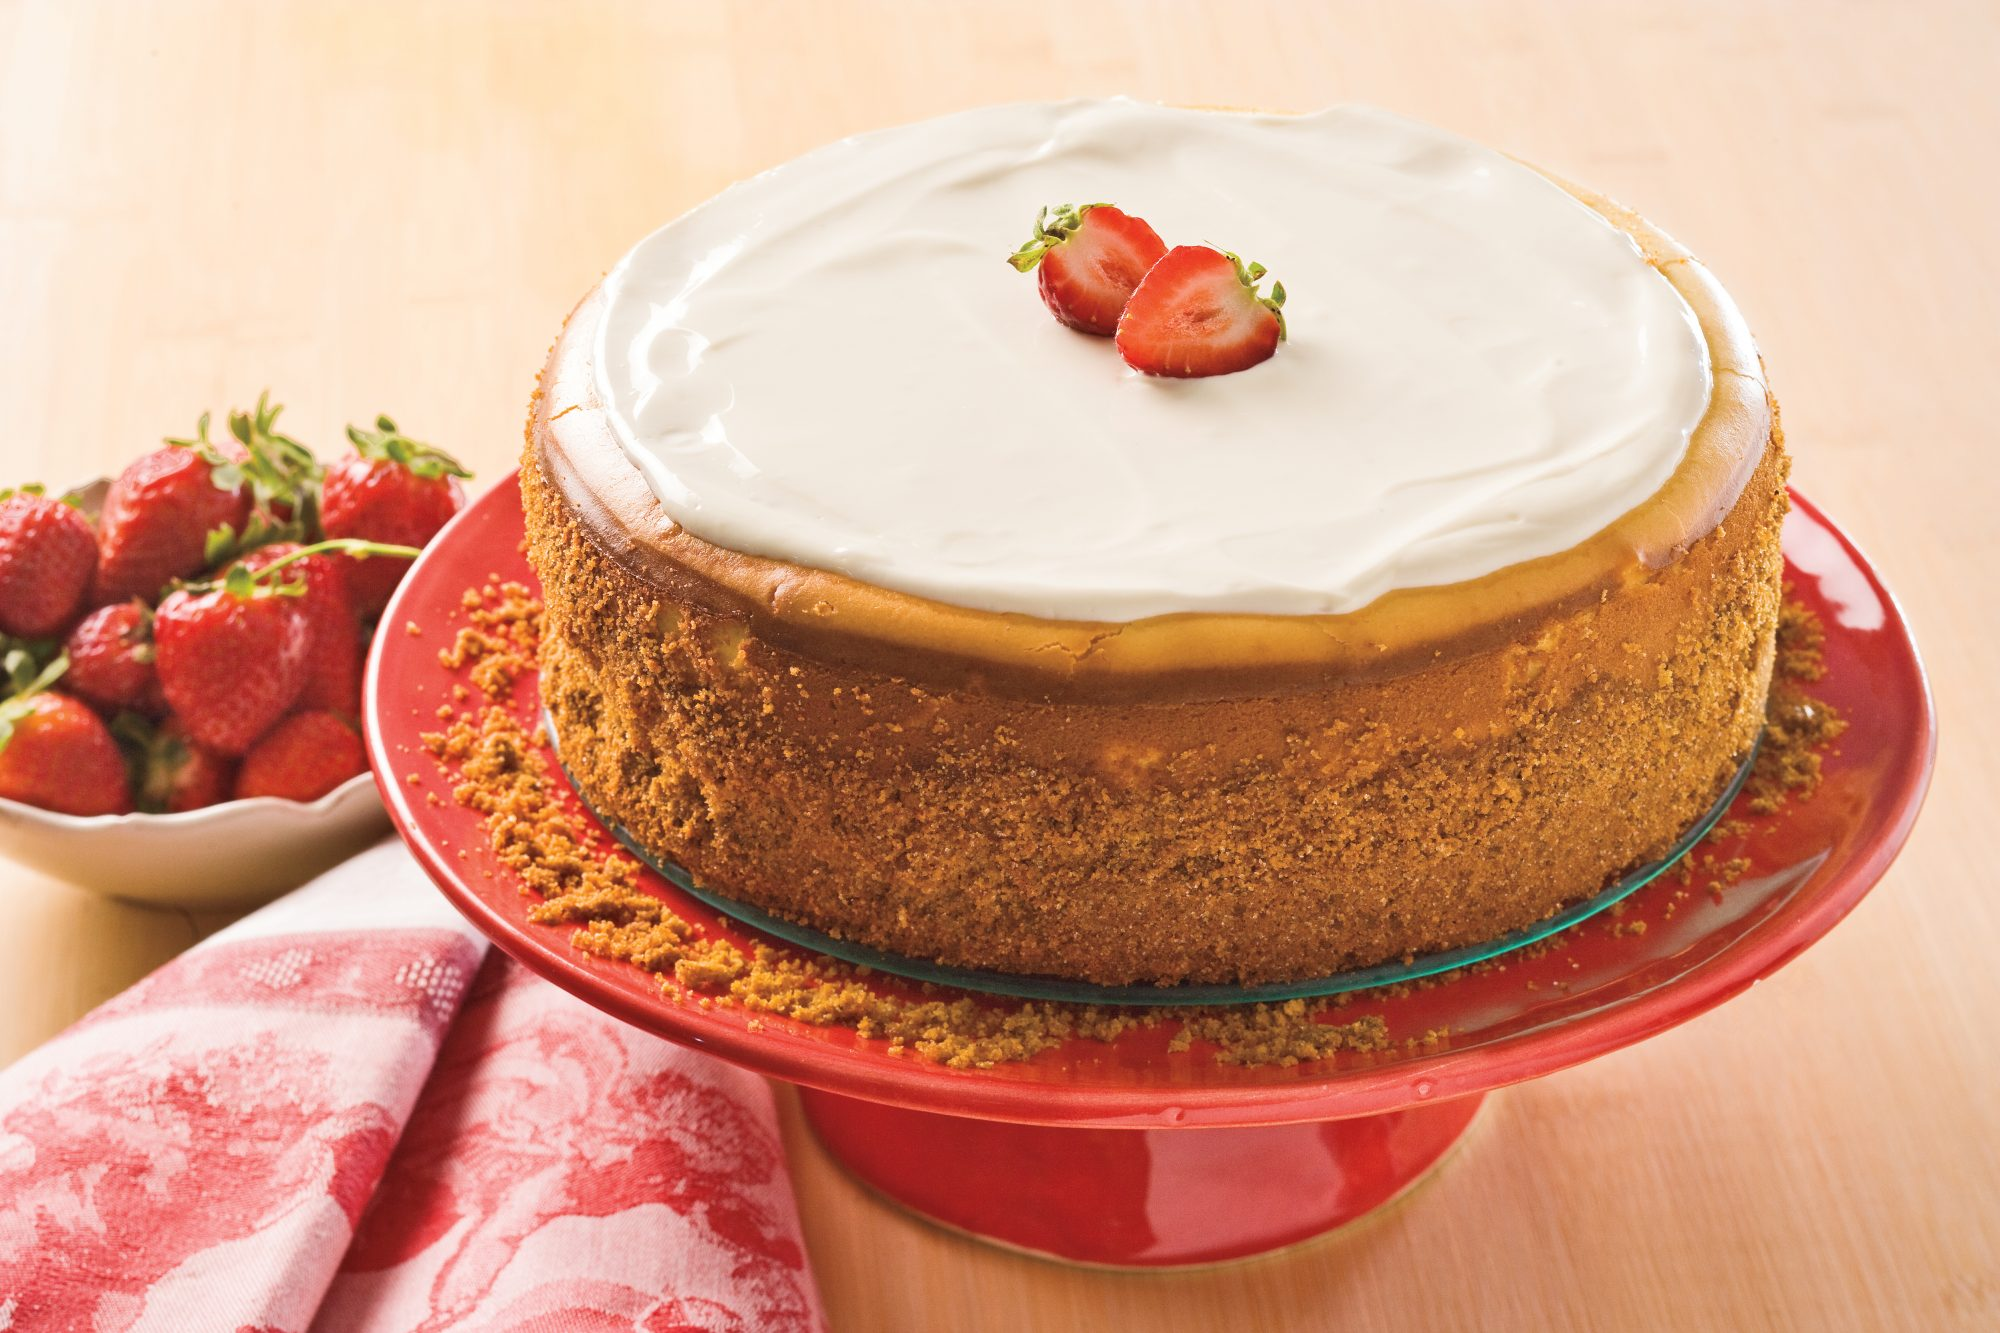 Cooking & Baking Tips: Smooth-Top Cheesecake